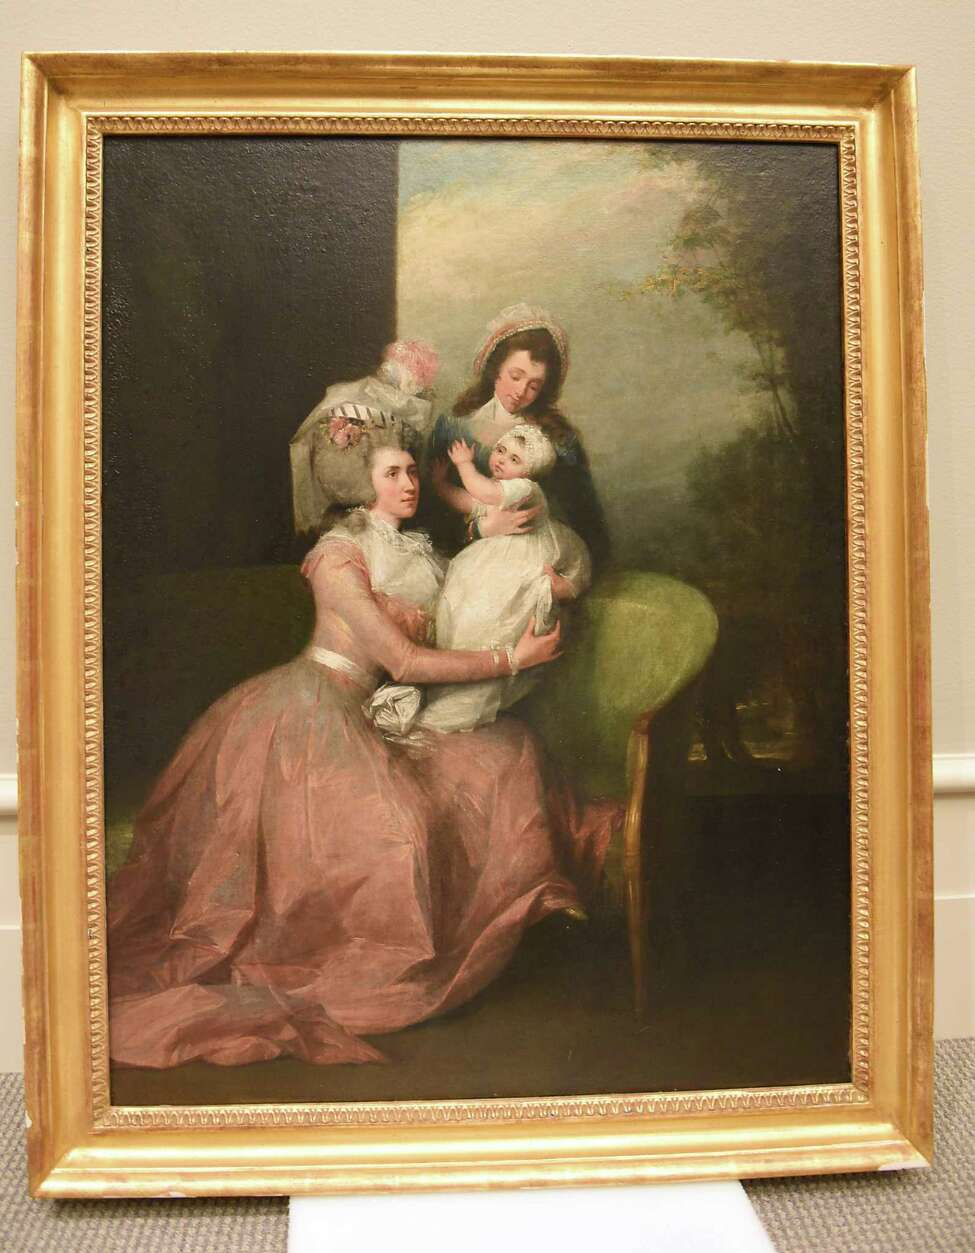 Portrait of Angelica Schuyler Church with her child and servant by John Trumbull, 1784, oil on canvas, private collection at The Schuyler Sisters and Their Circle exhibit at Albany Institute of History and Art on Friday, July 12, 2019 in Albany, N.Y. (Lori Van Buren/Times Union)